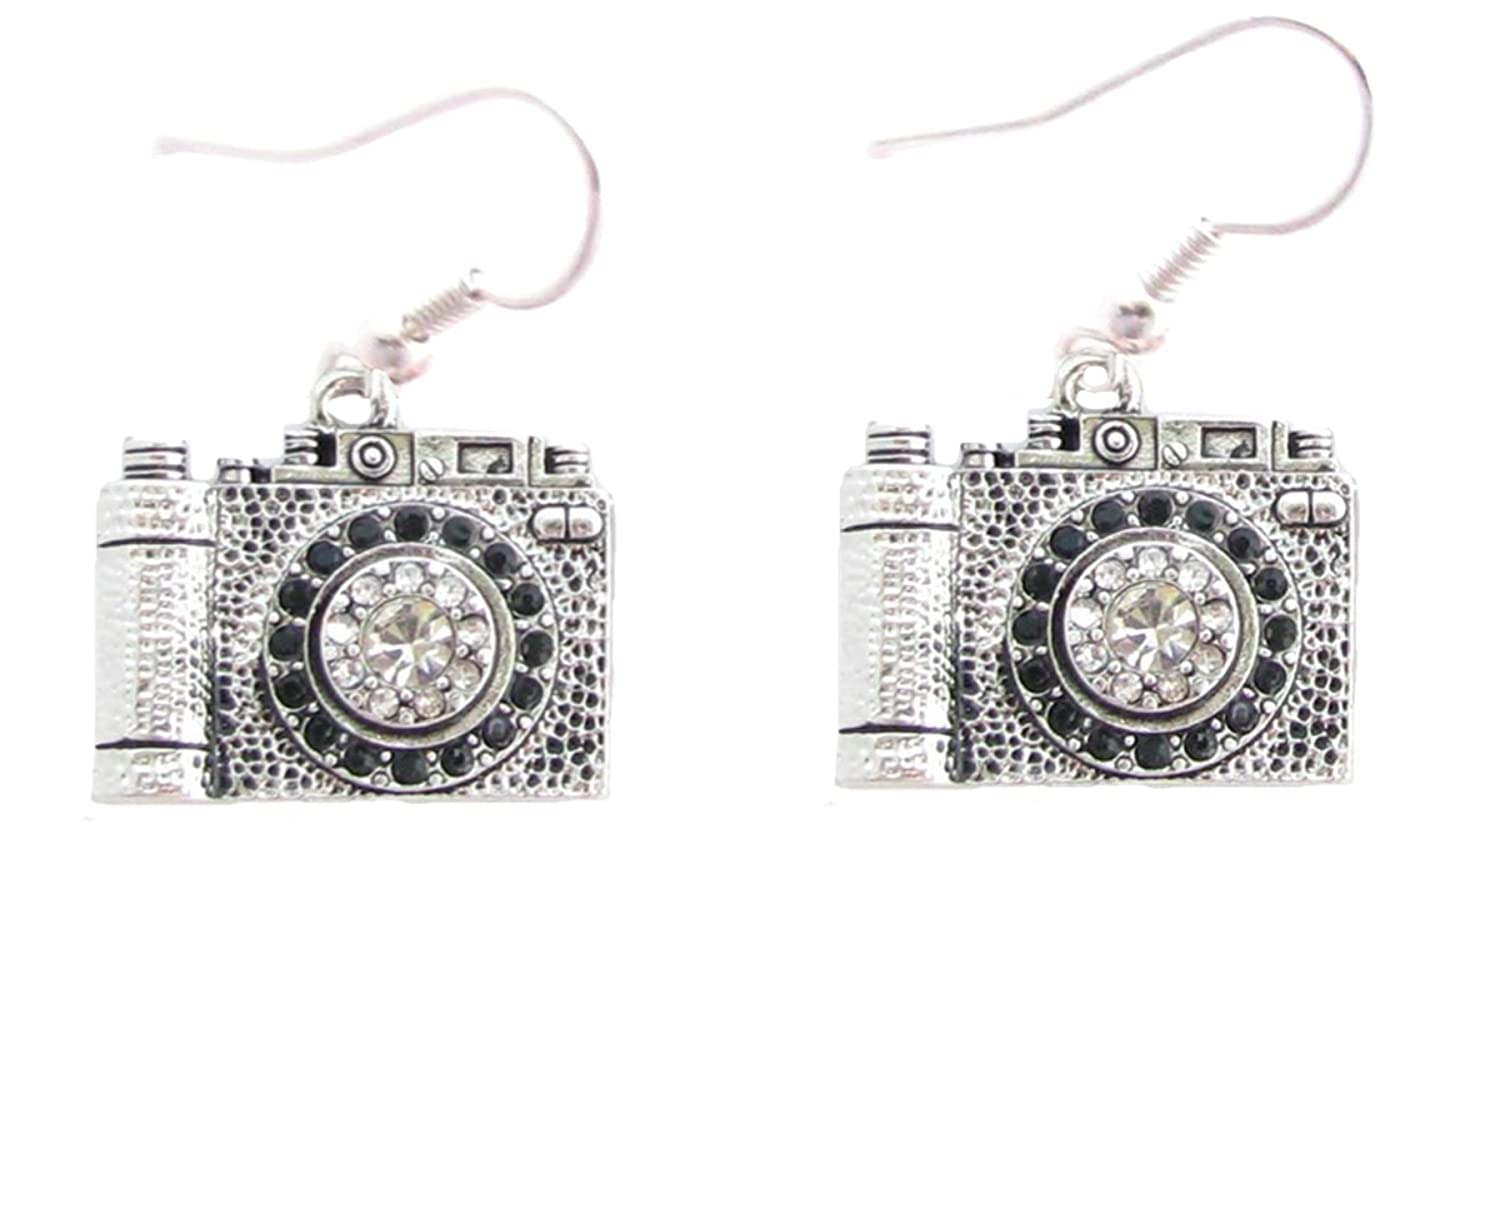 Camera Clear Crystals Fashion French Hook Earrings Jewelry